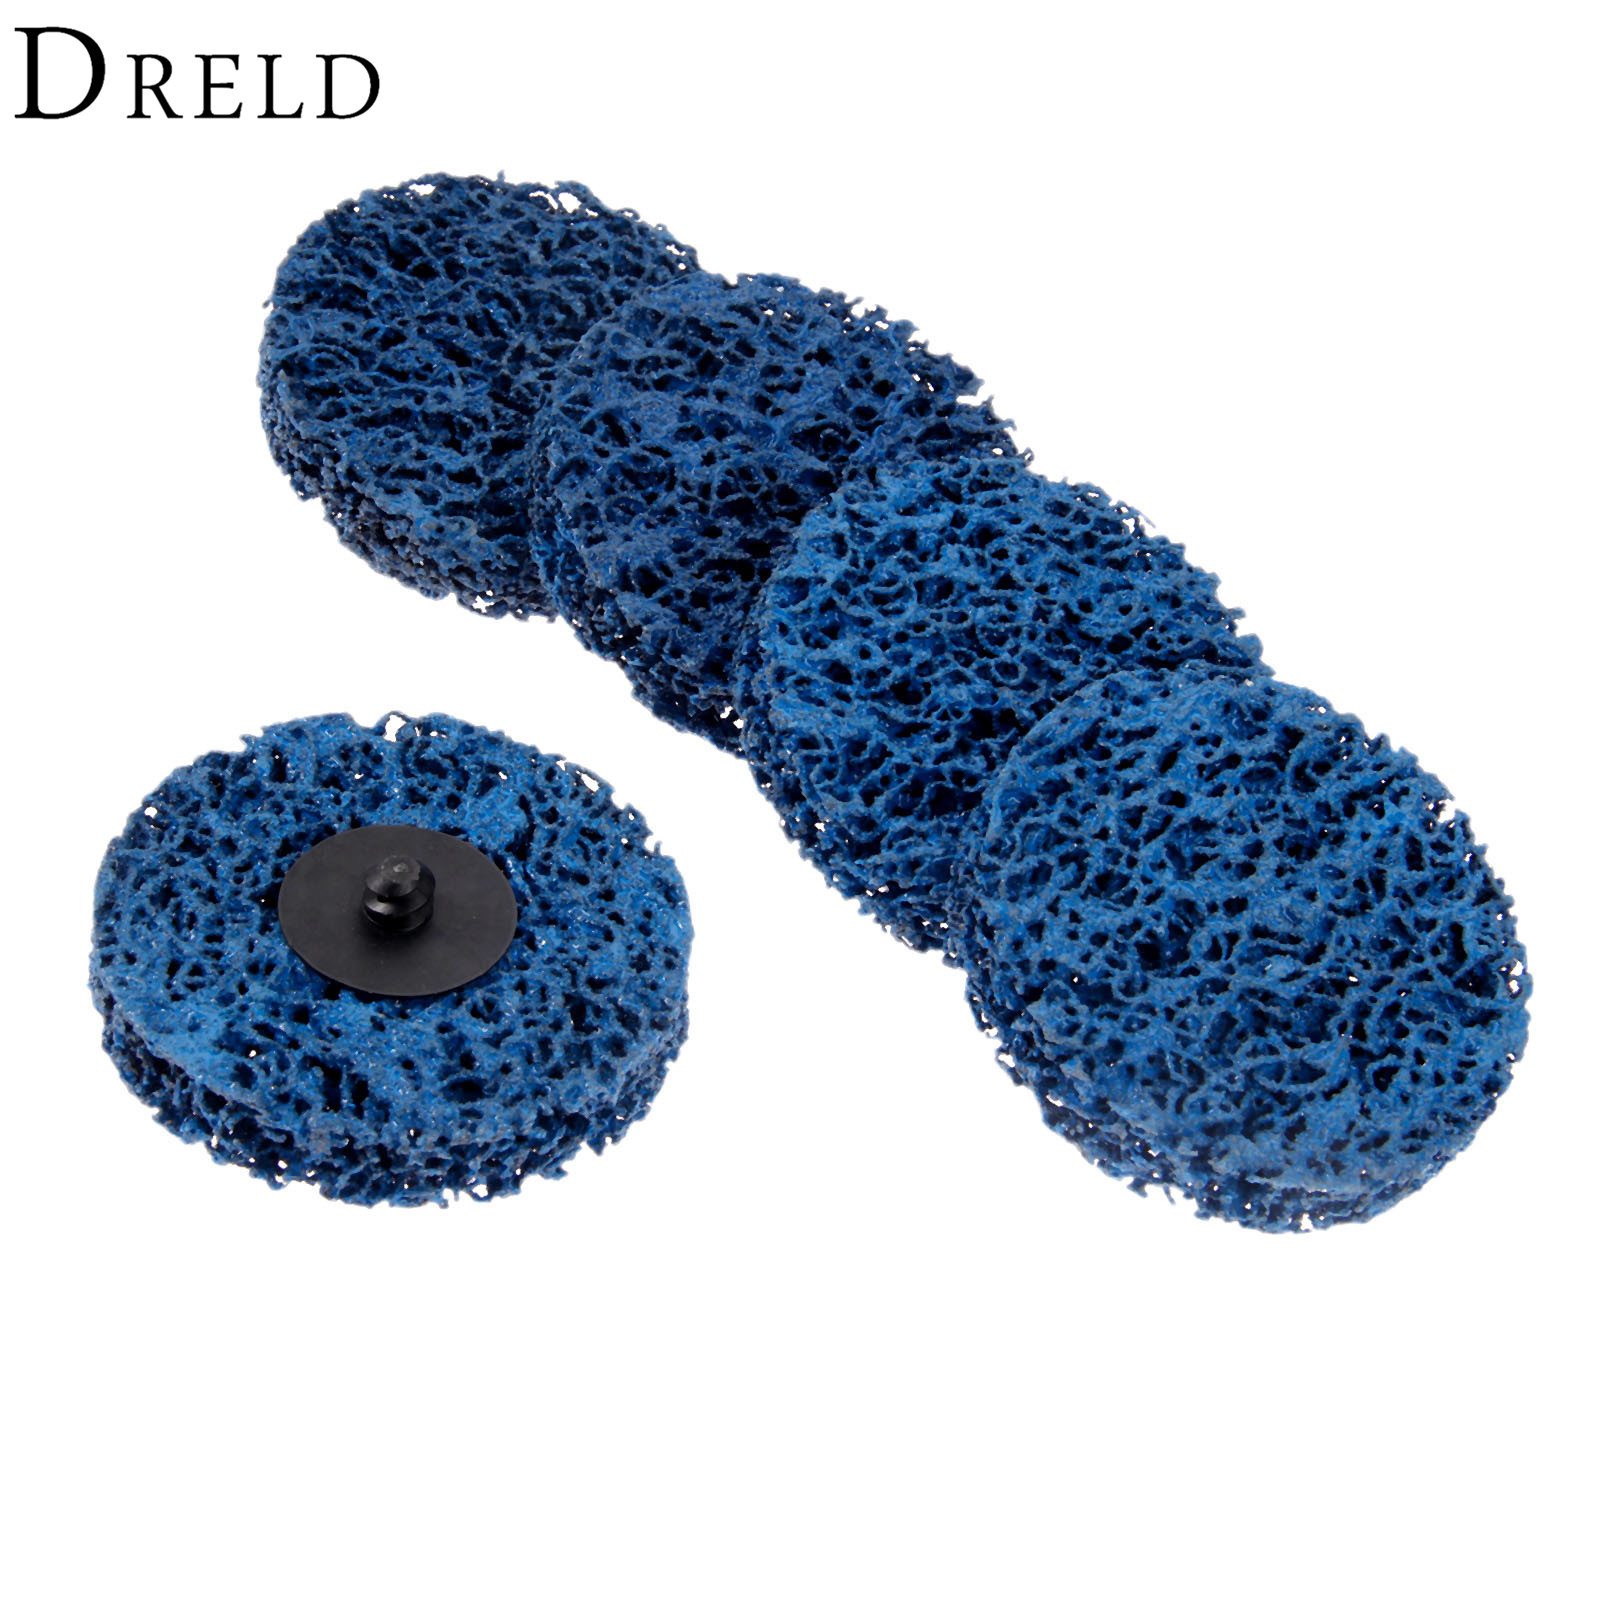 DRELD 5Pcs 75mm/3inch Poly Strip Wheels Paint Rust Removal Clean Right Angle Grinder Discs For Metals Fiber Glass Stone Wood